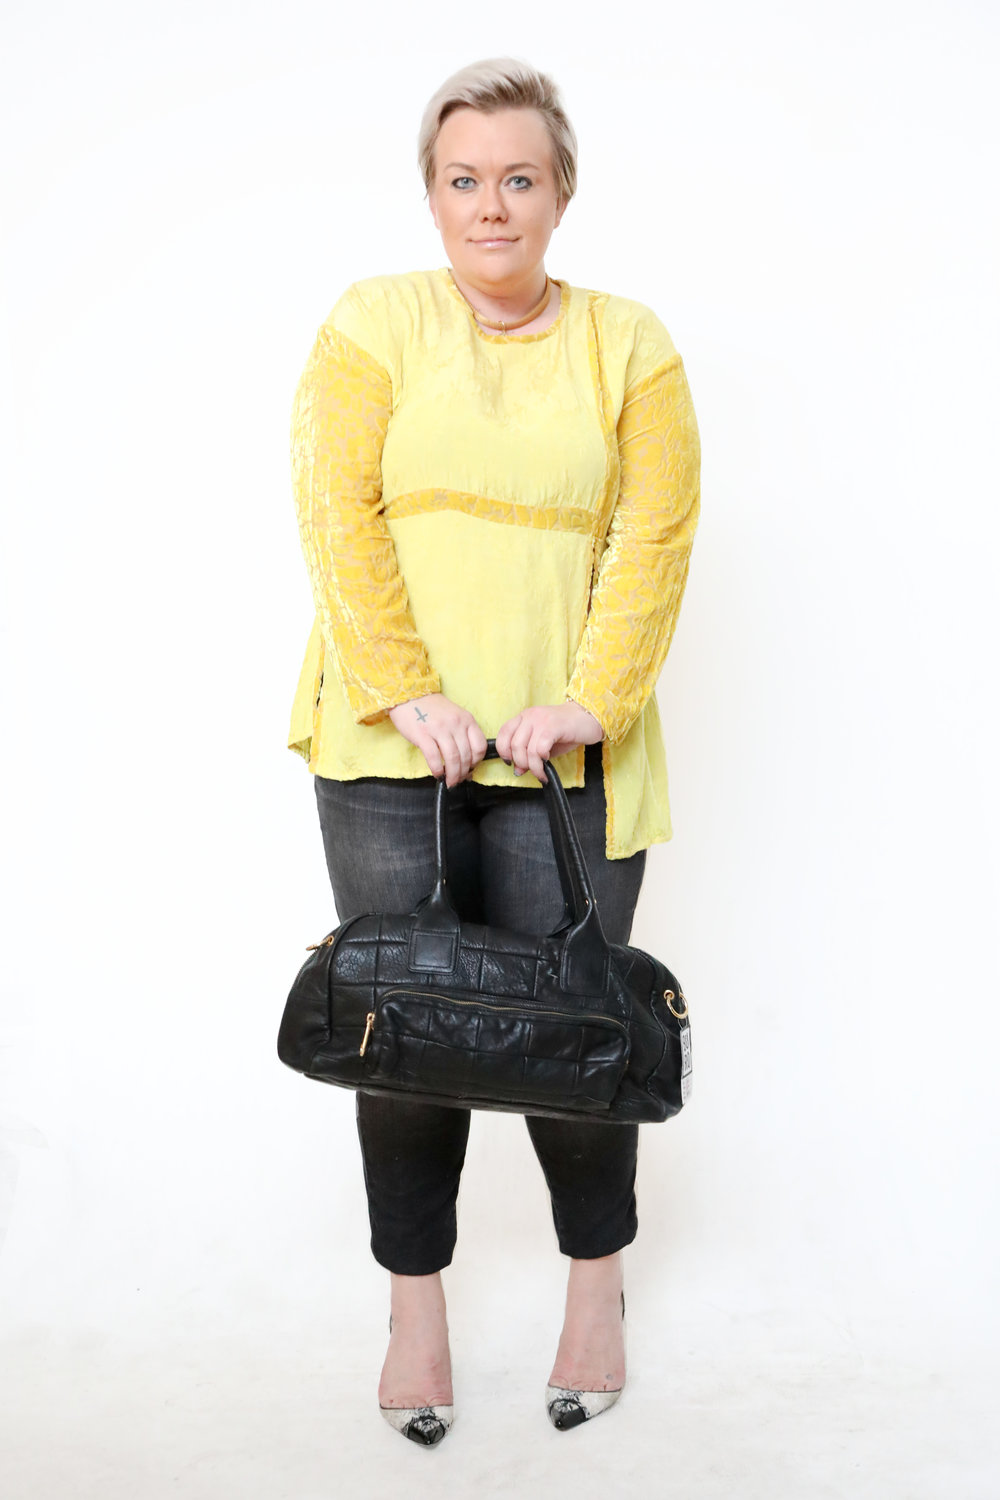 Velvet & silk yellow top from Boro Resale.